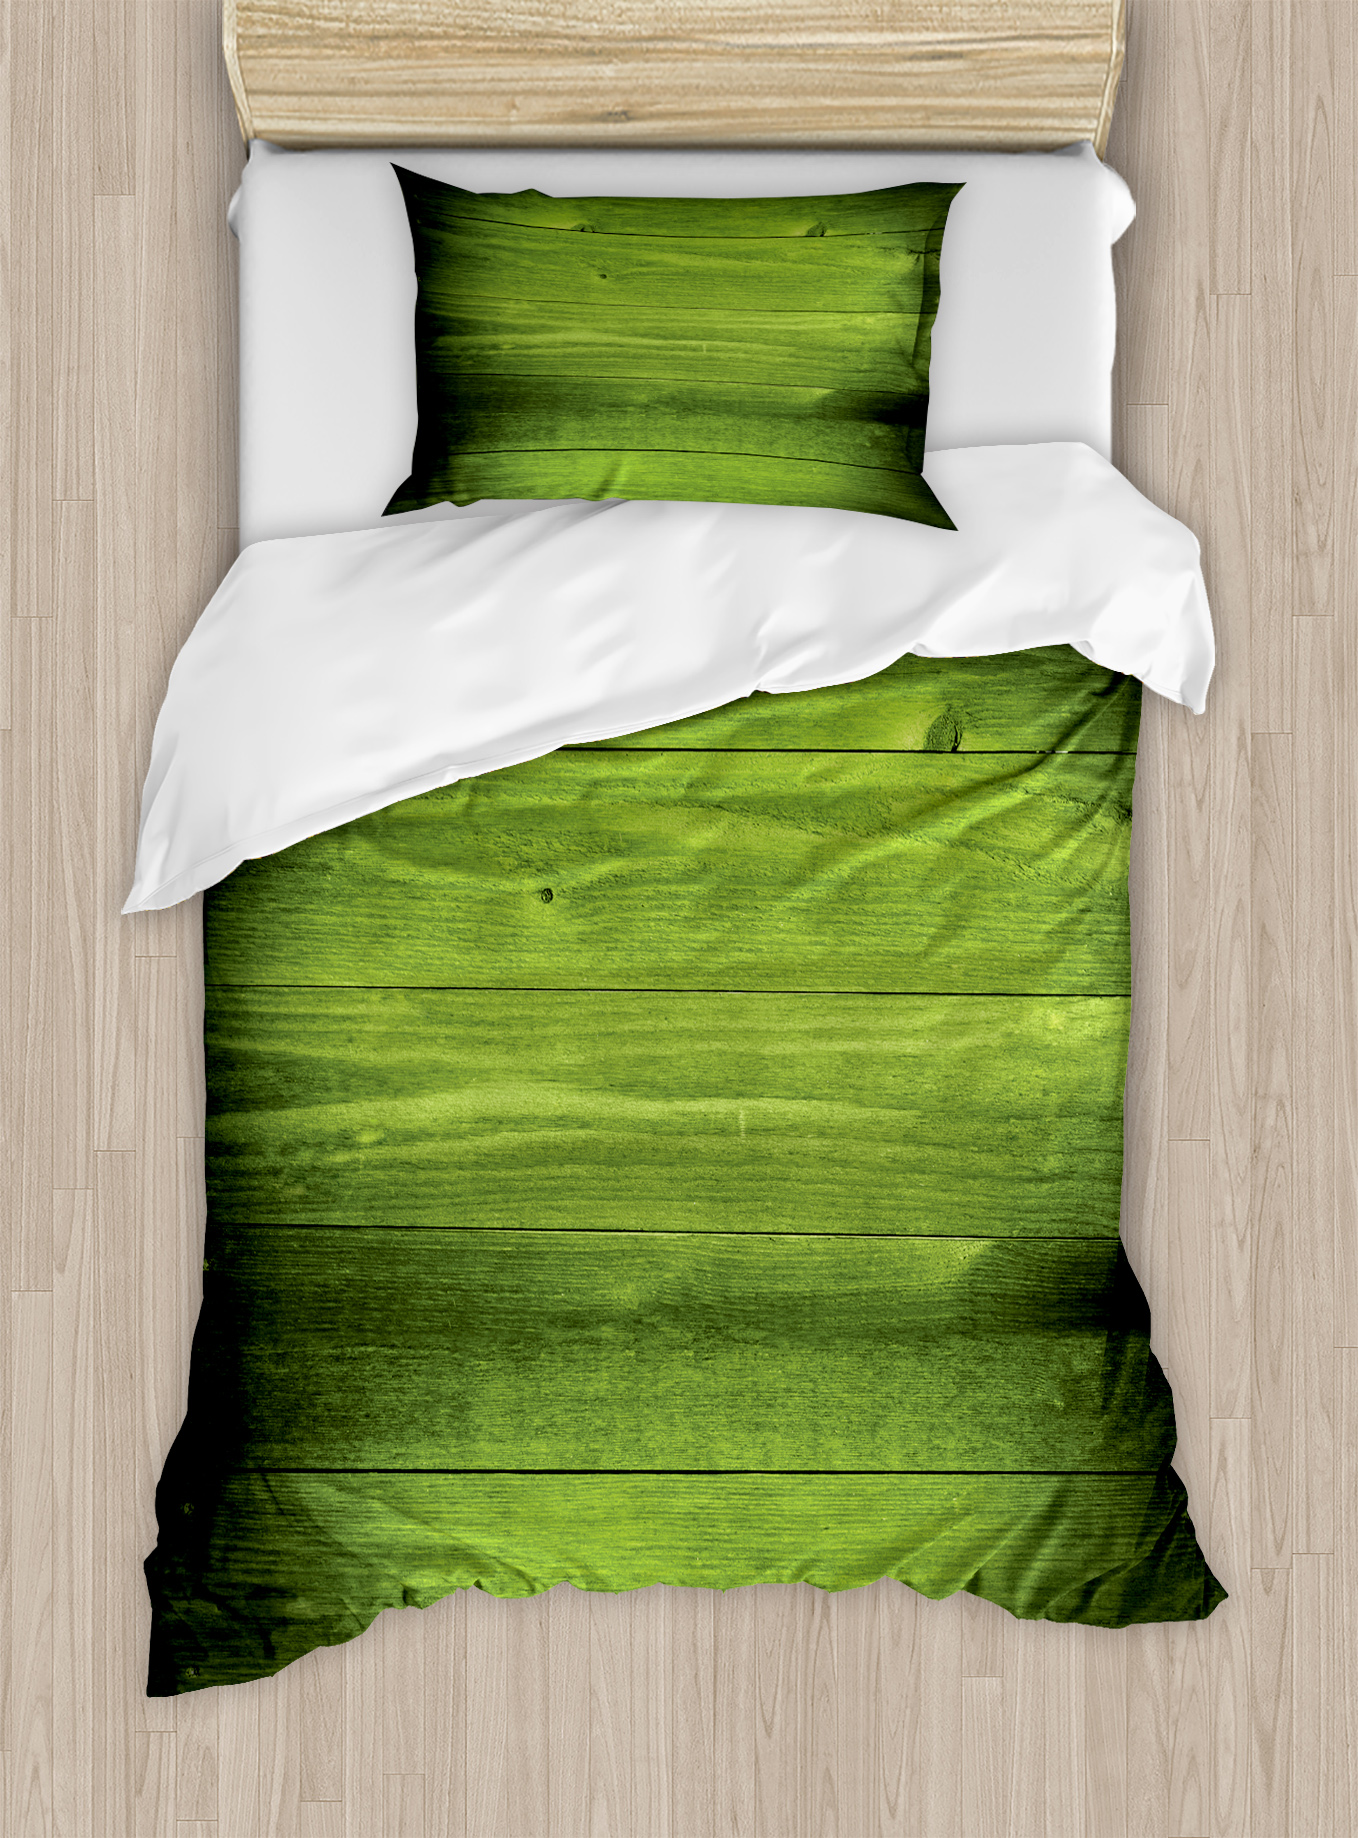 Forest Green Twin Size Duvet Cover Set, Horizontal Wooden